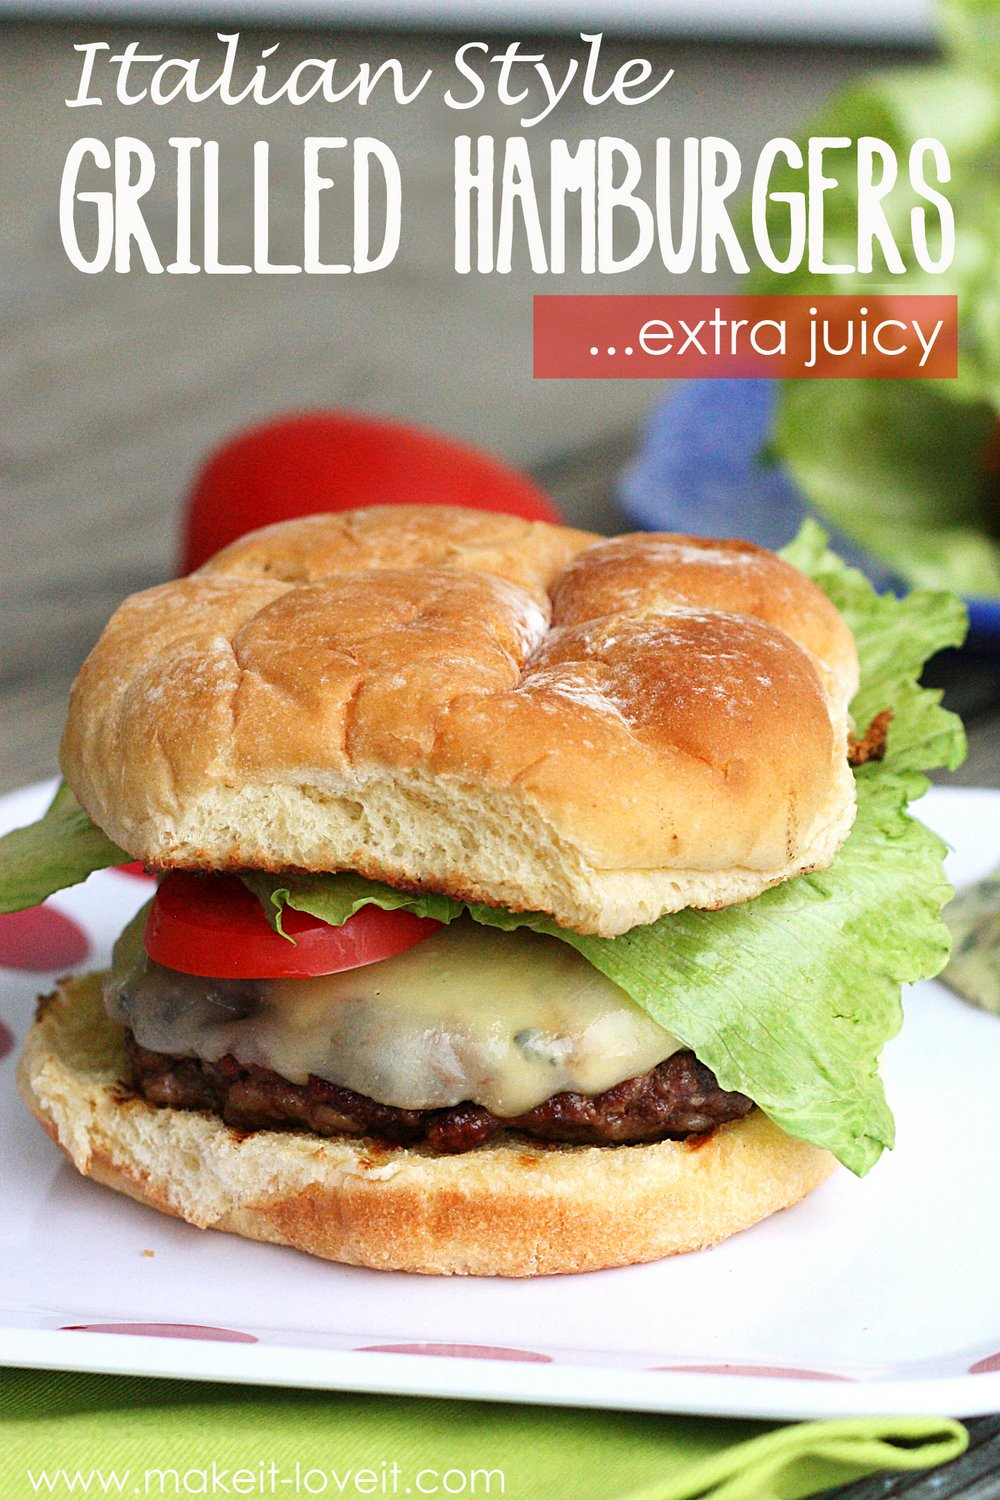 Italian Style GRILLED HAMBURGERS (…extra juicy)